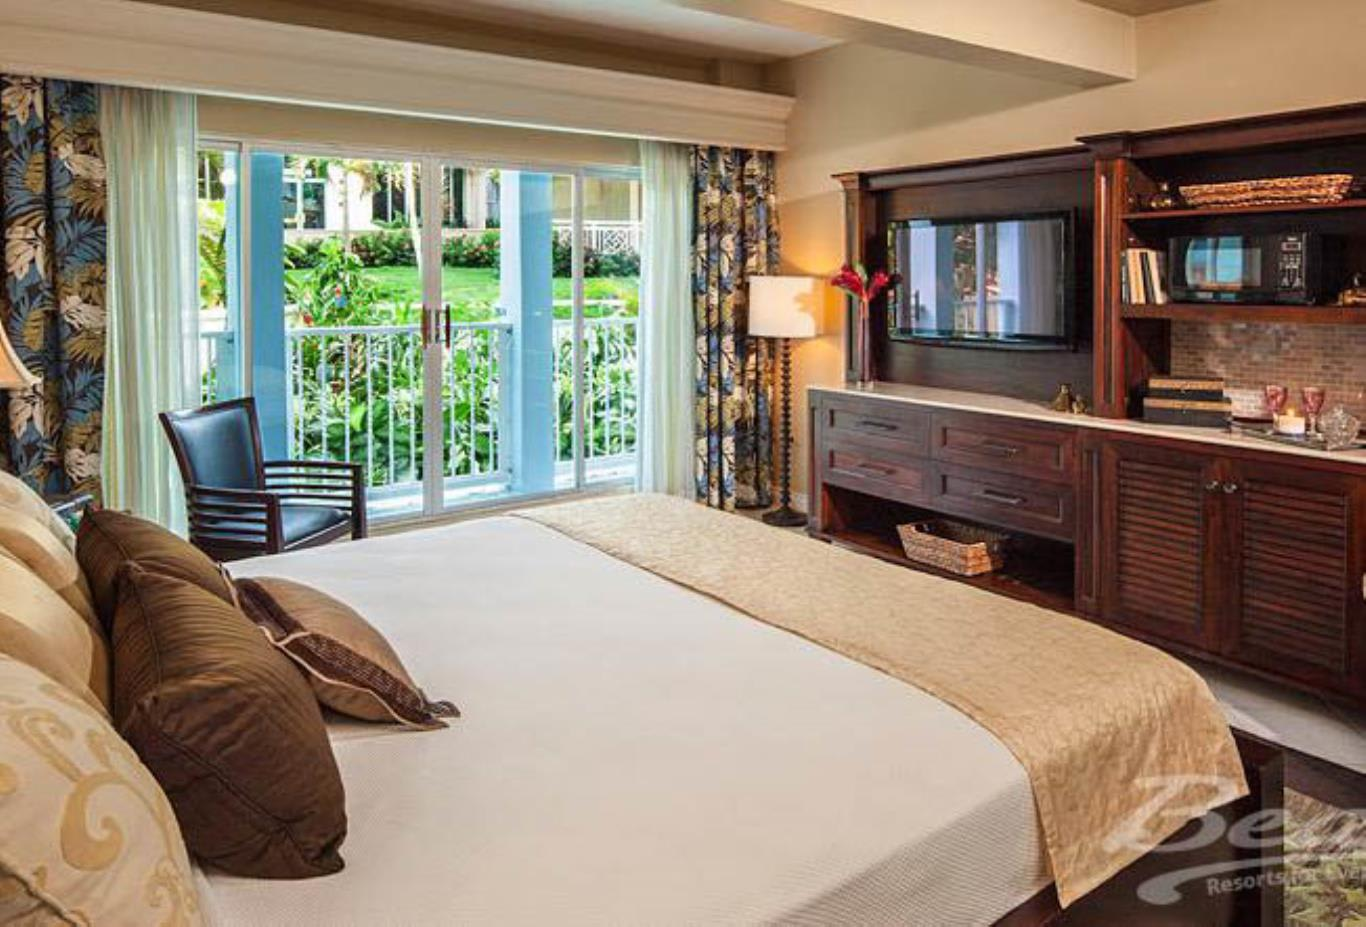 Caribbean Luxury Family Sized Suite - PK,PD